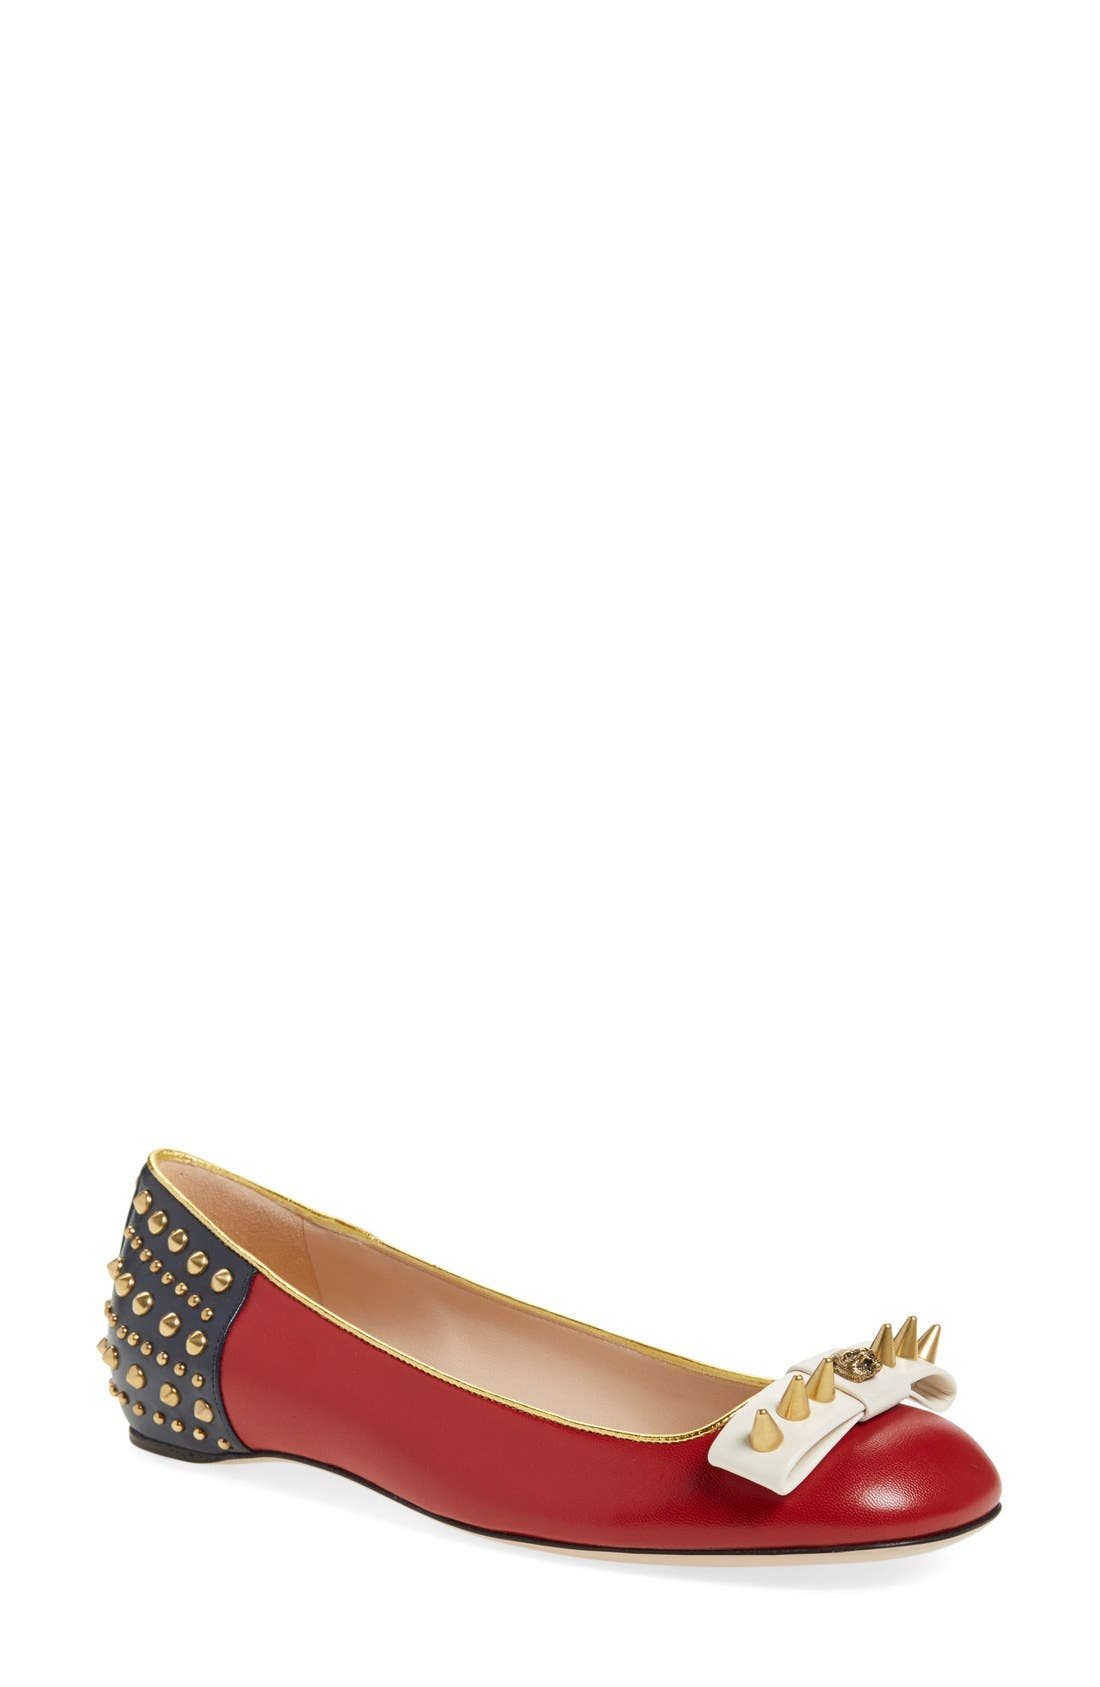 Main Image - Gucci 'Lexi' Studded Square Toe Flat (Women)